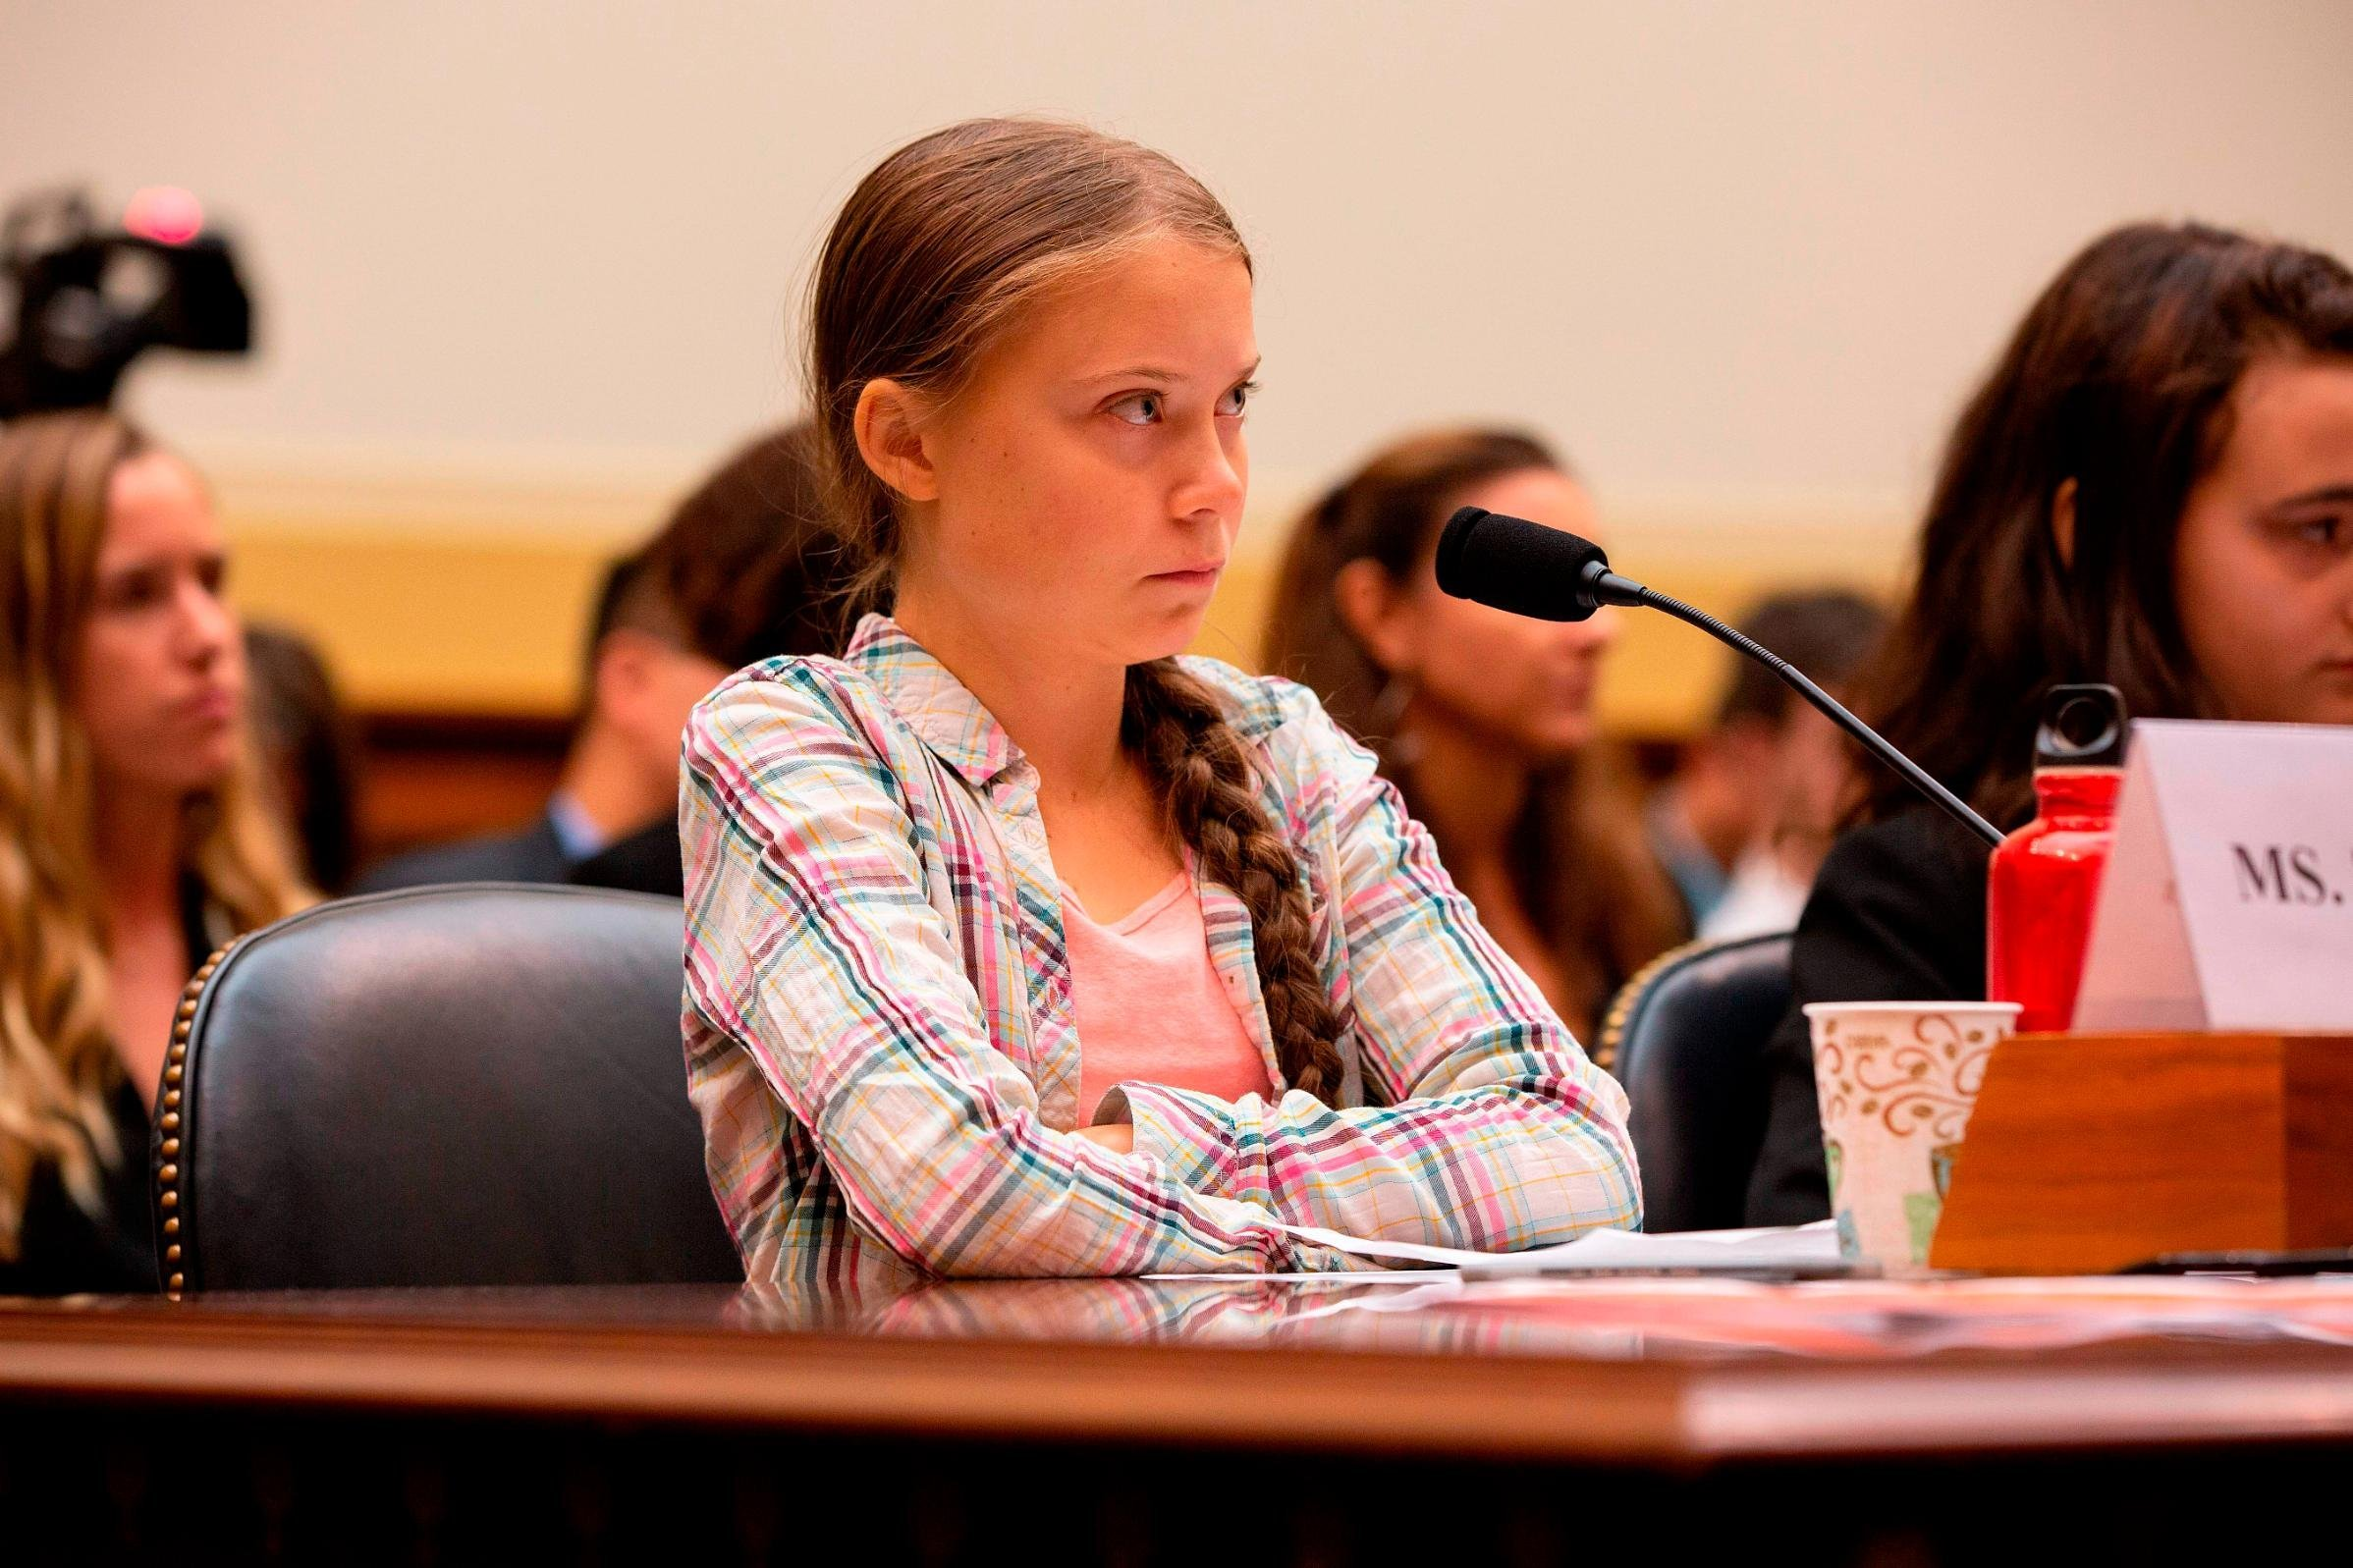 16-year-old climate activist Greta Thunberg tells Congress to listen to the scientists and take real action